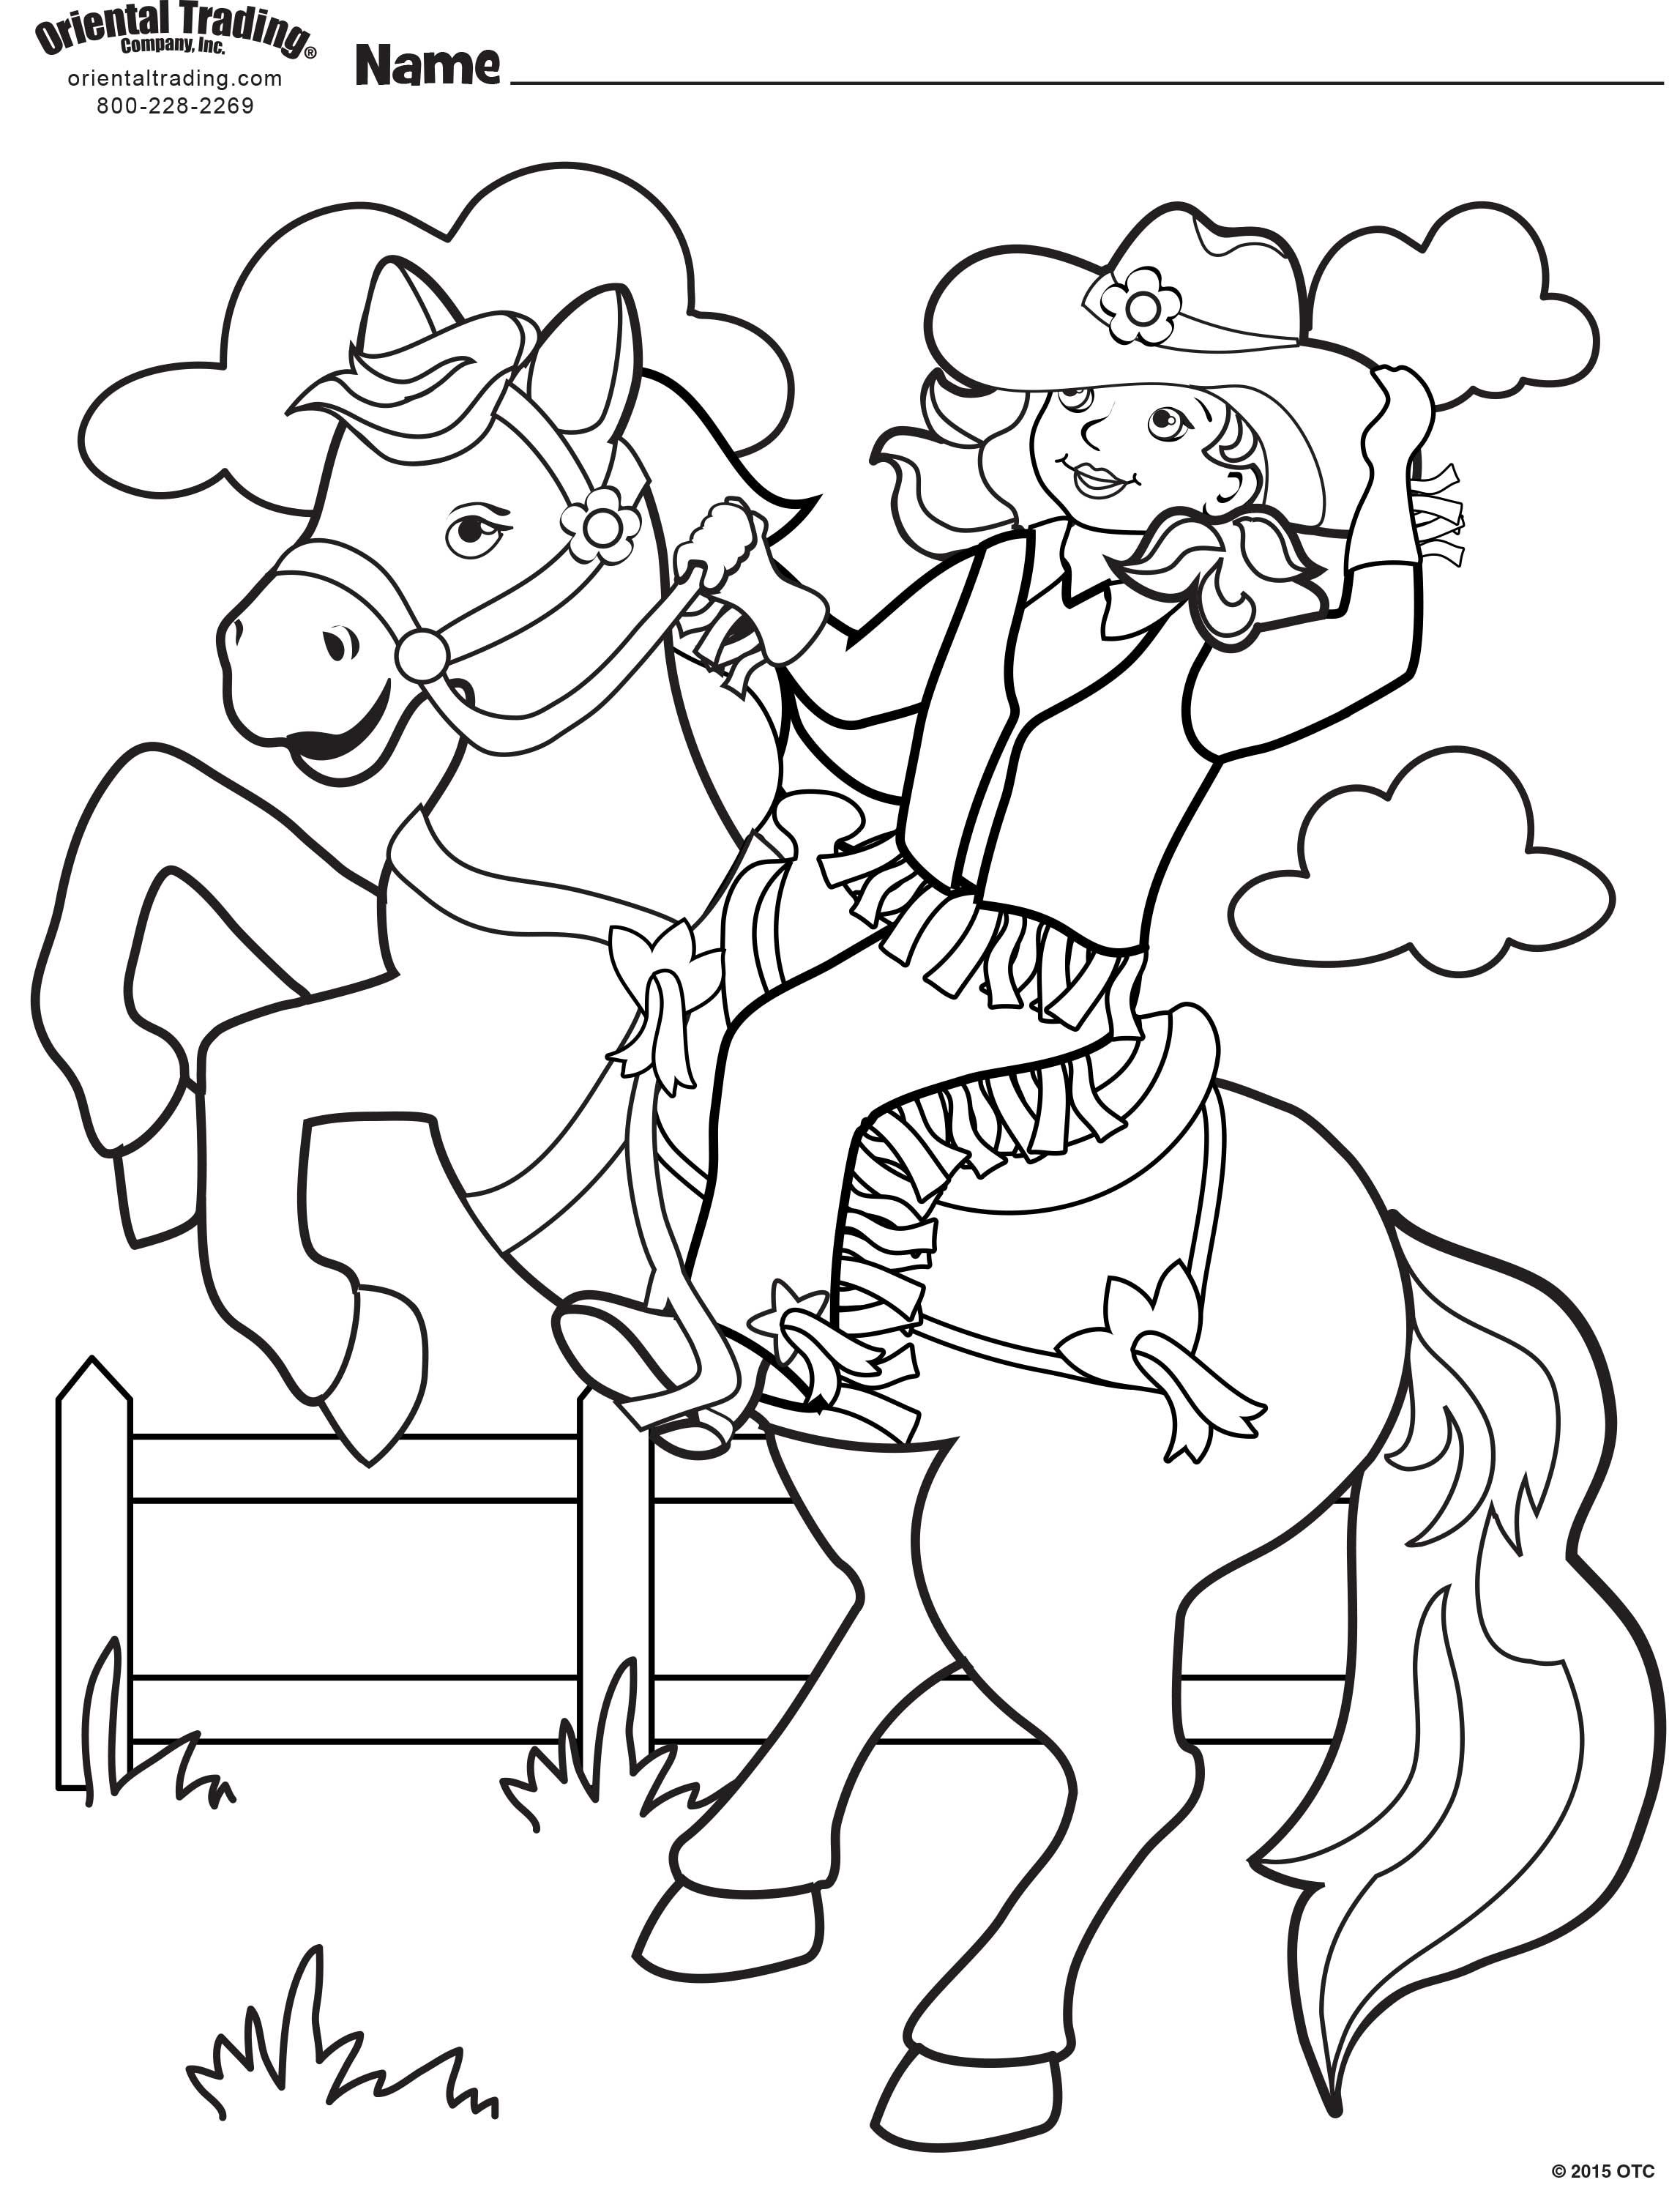 Cowgirl Coloring Page Horse Coloring Pages Coloring Pages Bear Coloring Pages